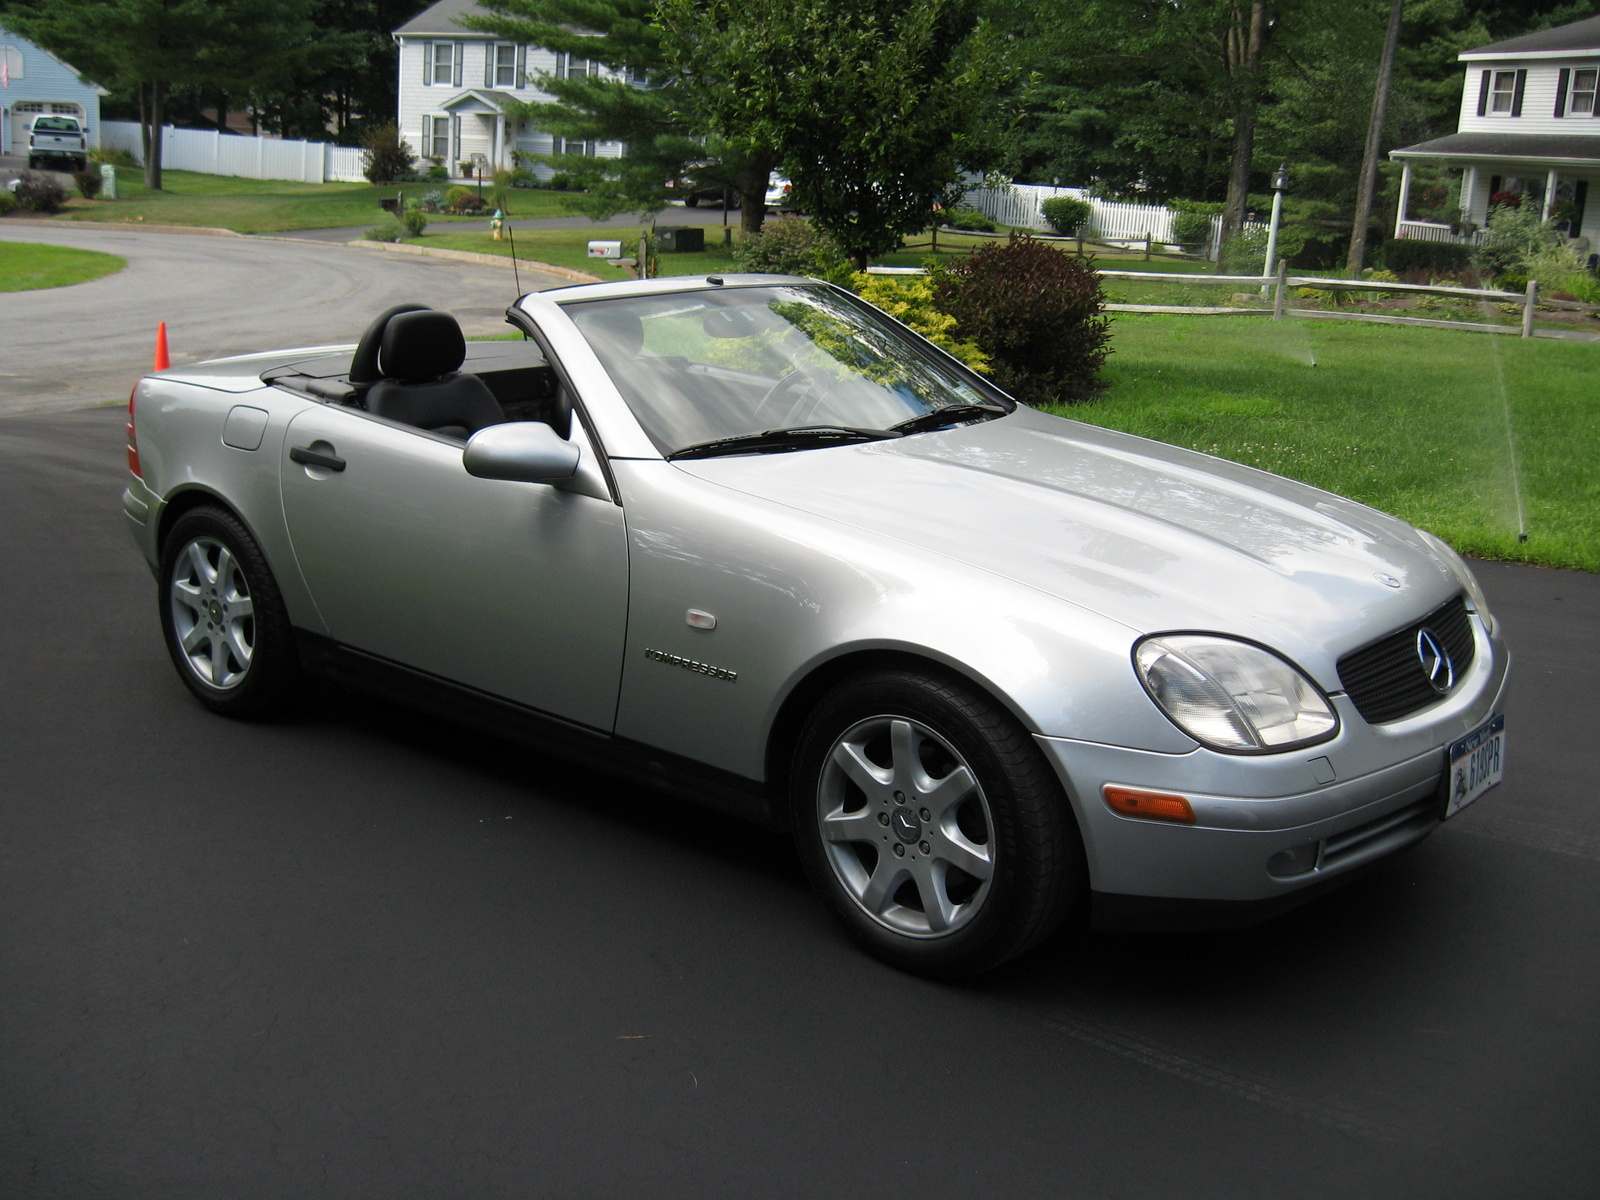 1999 mercedes benz slk class pictures cargurus for Mercedes benz slk230 kompressor